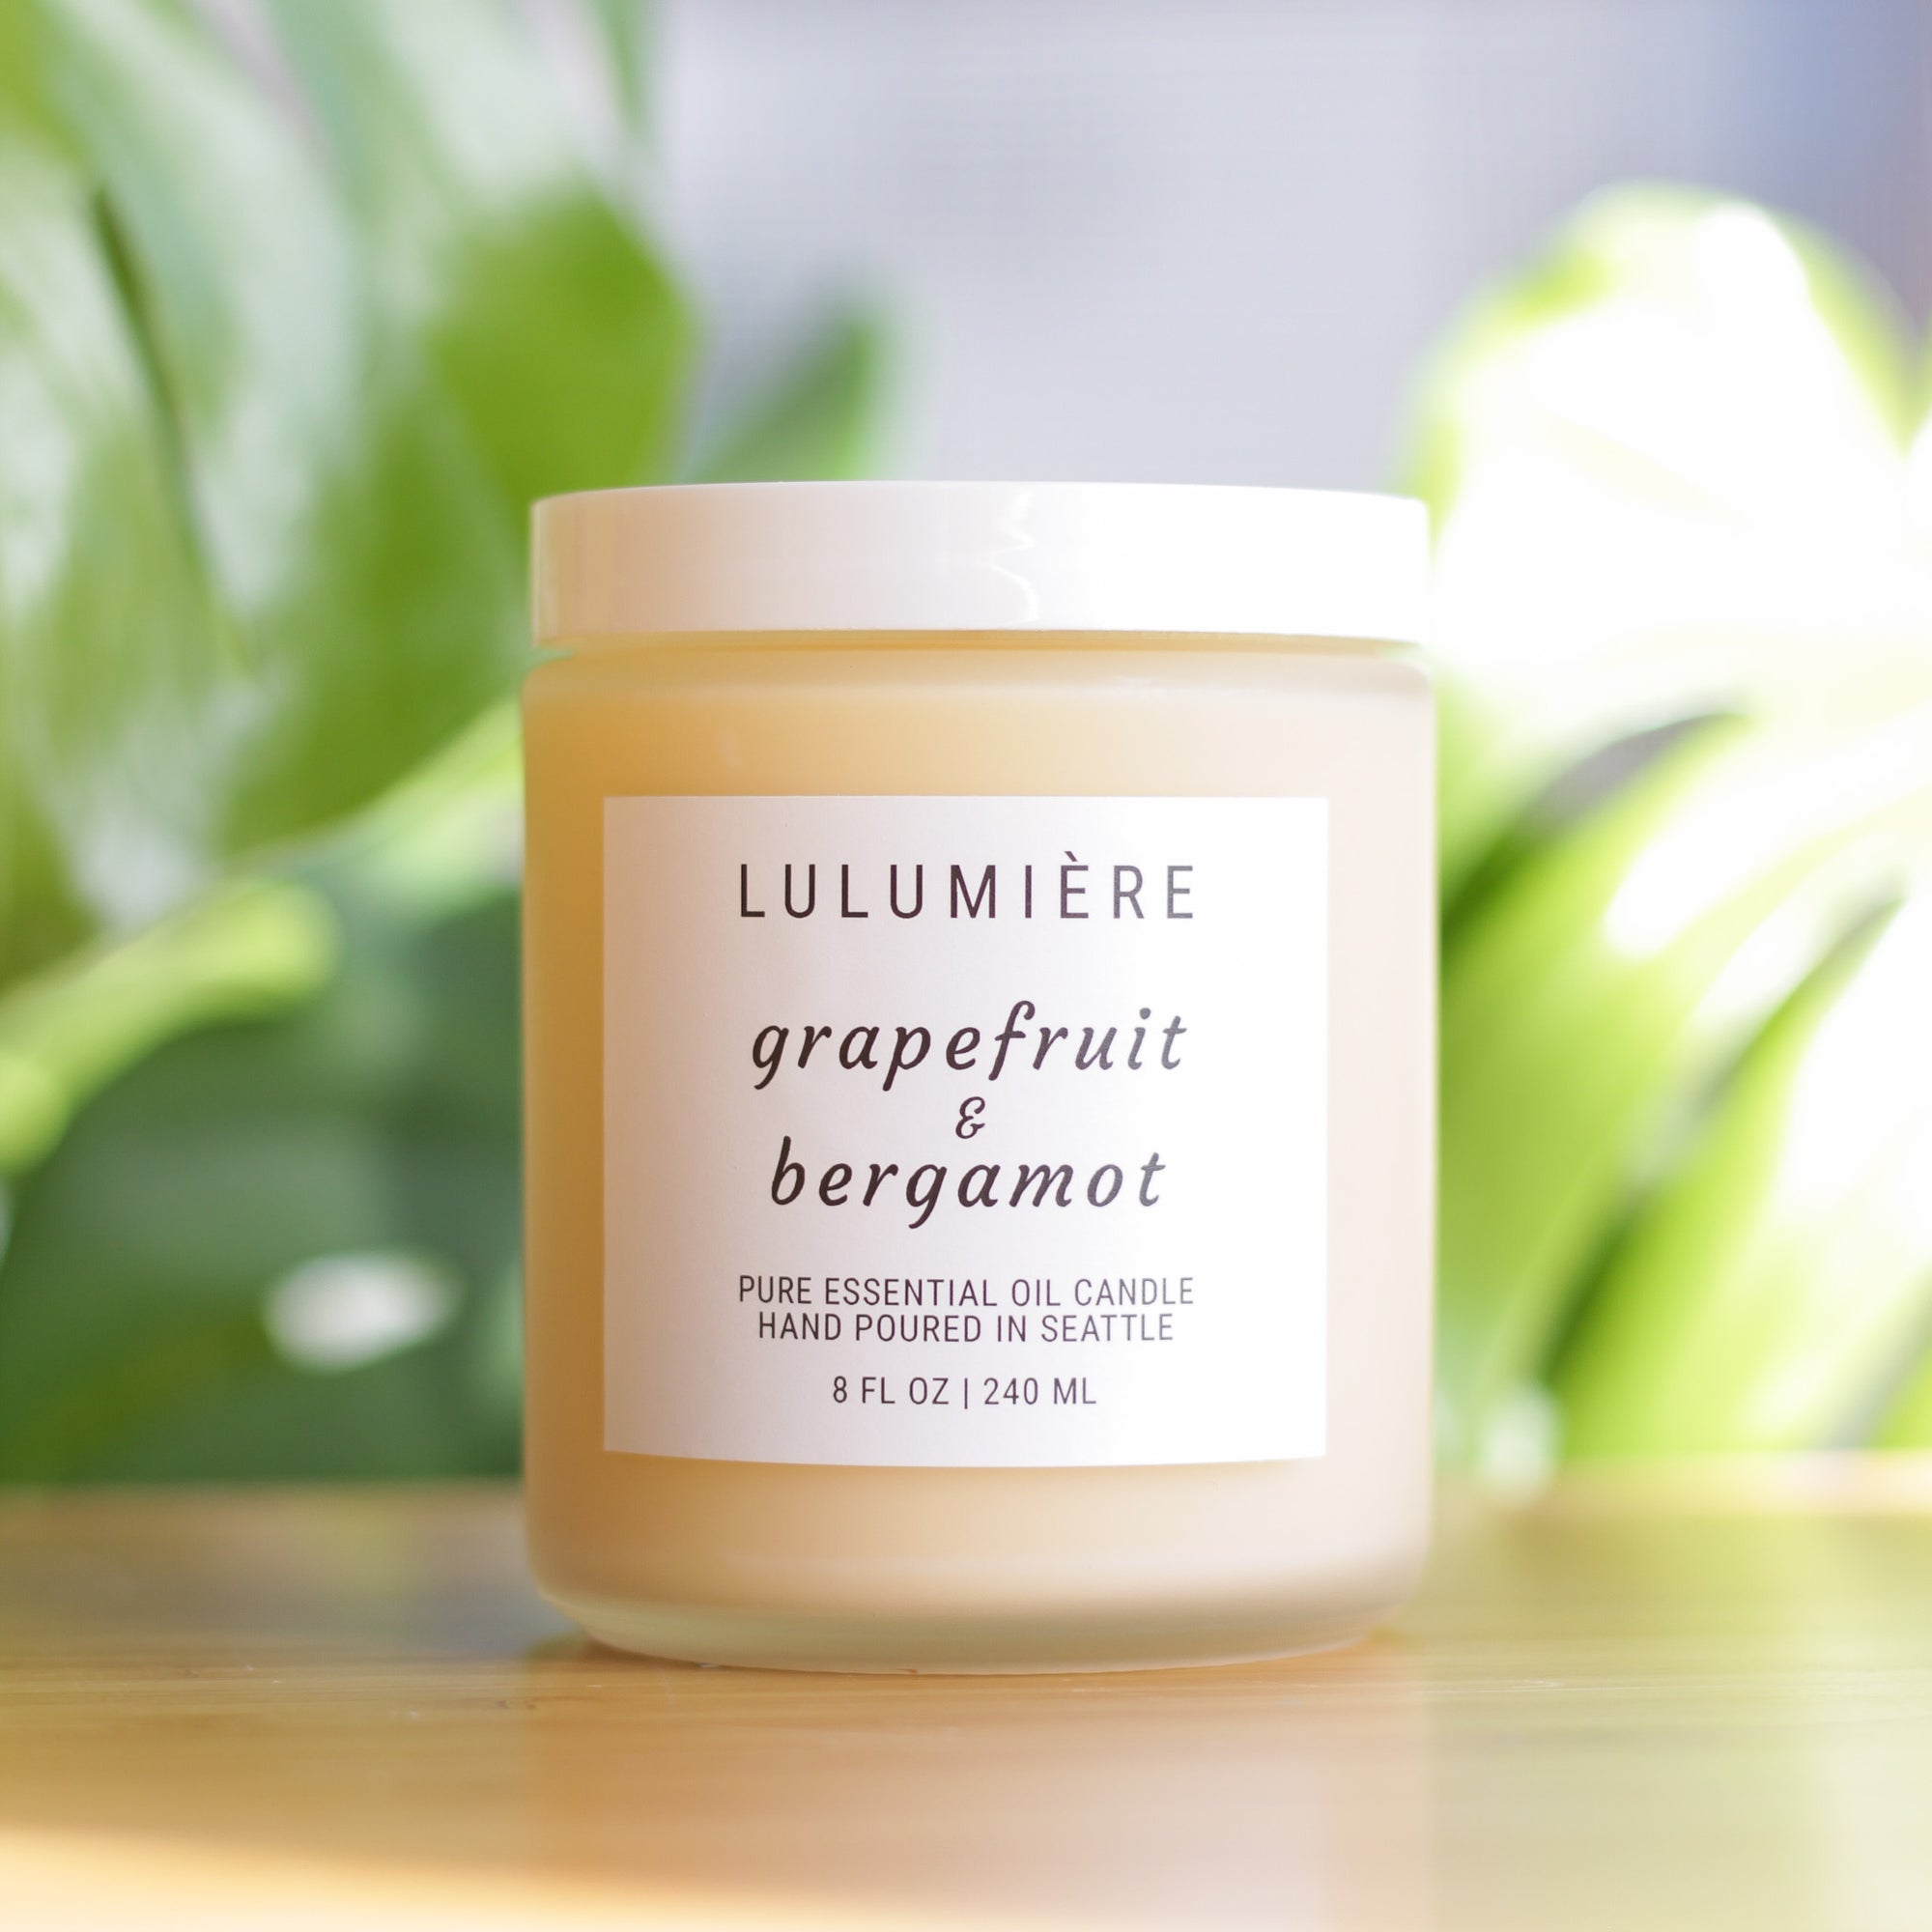 Lulumiere Candles